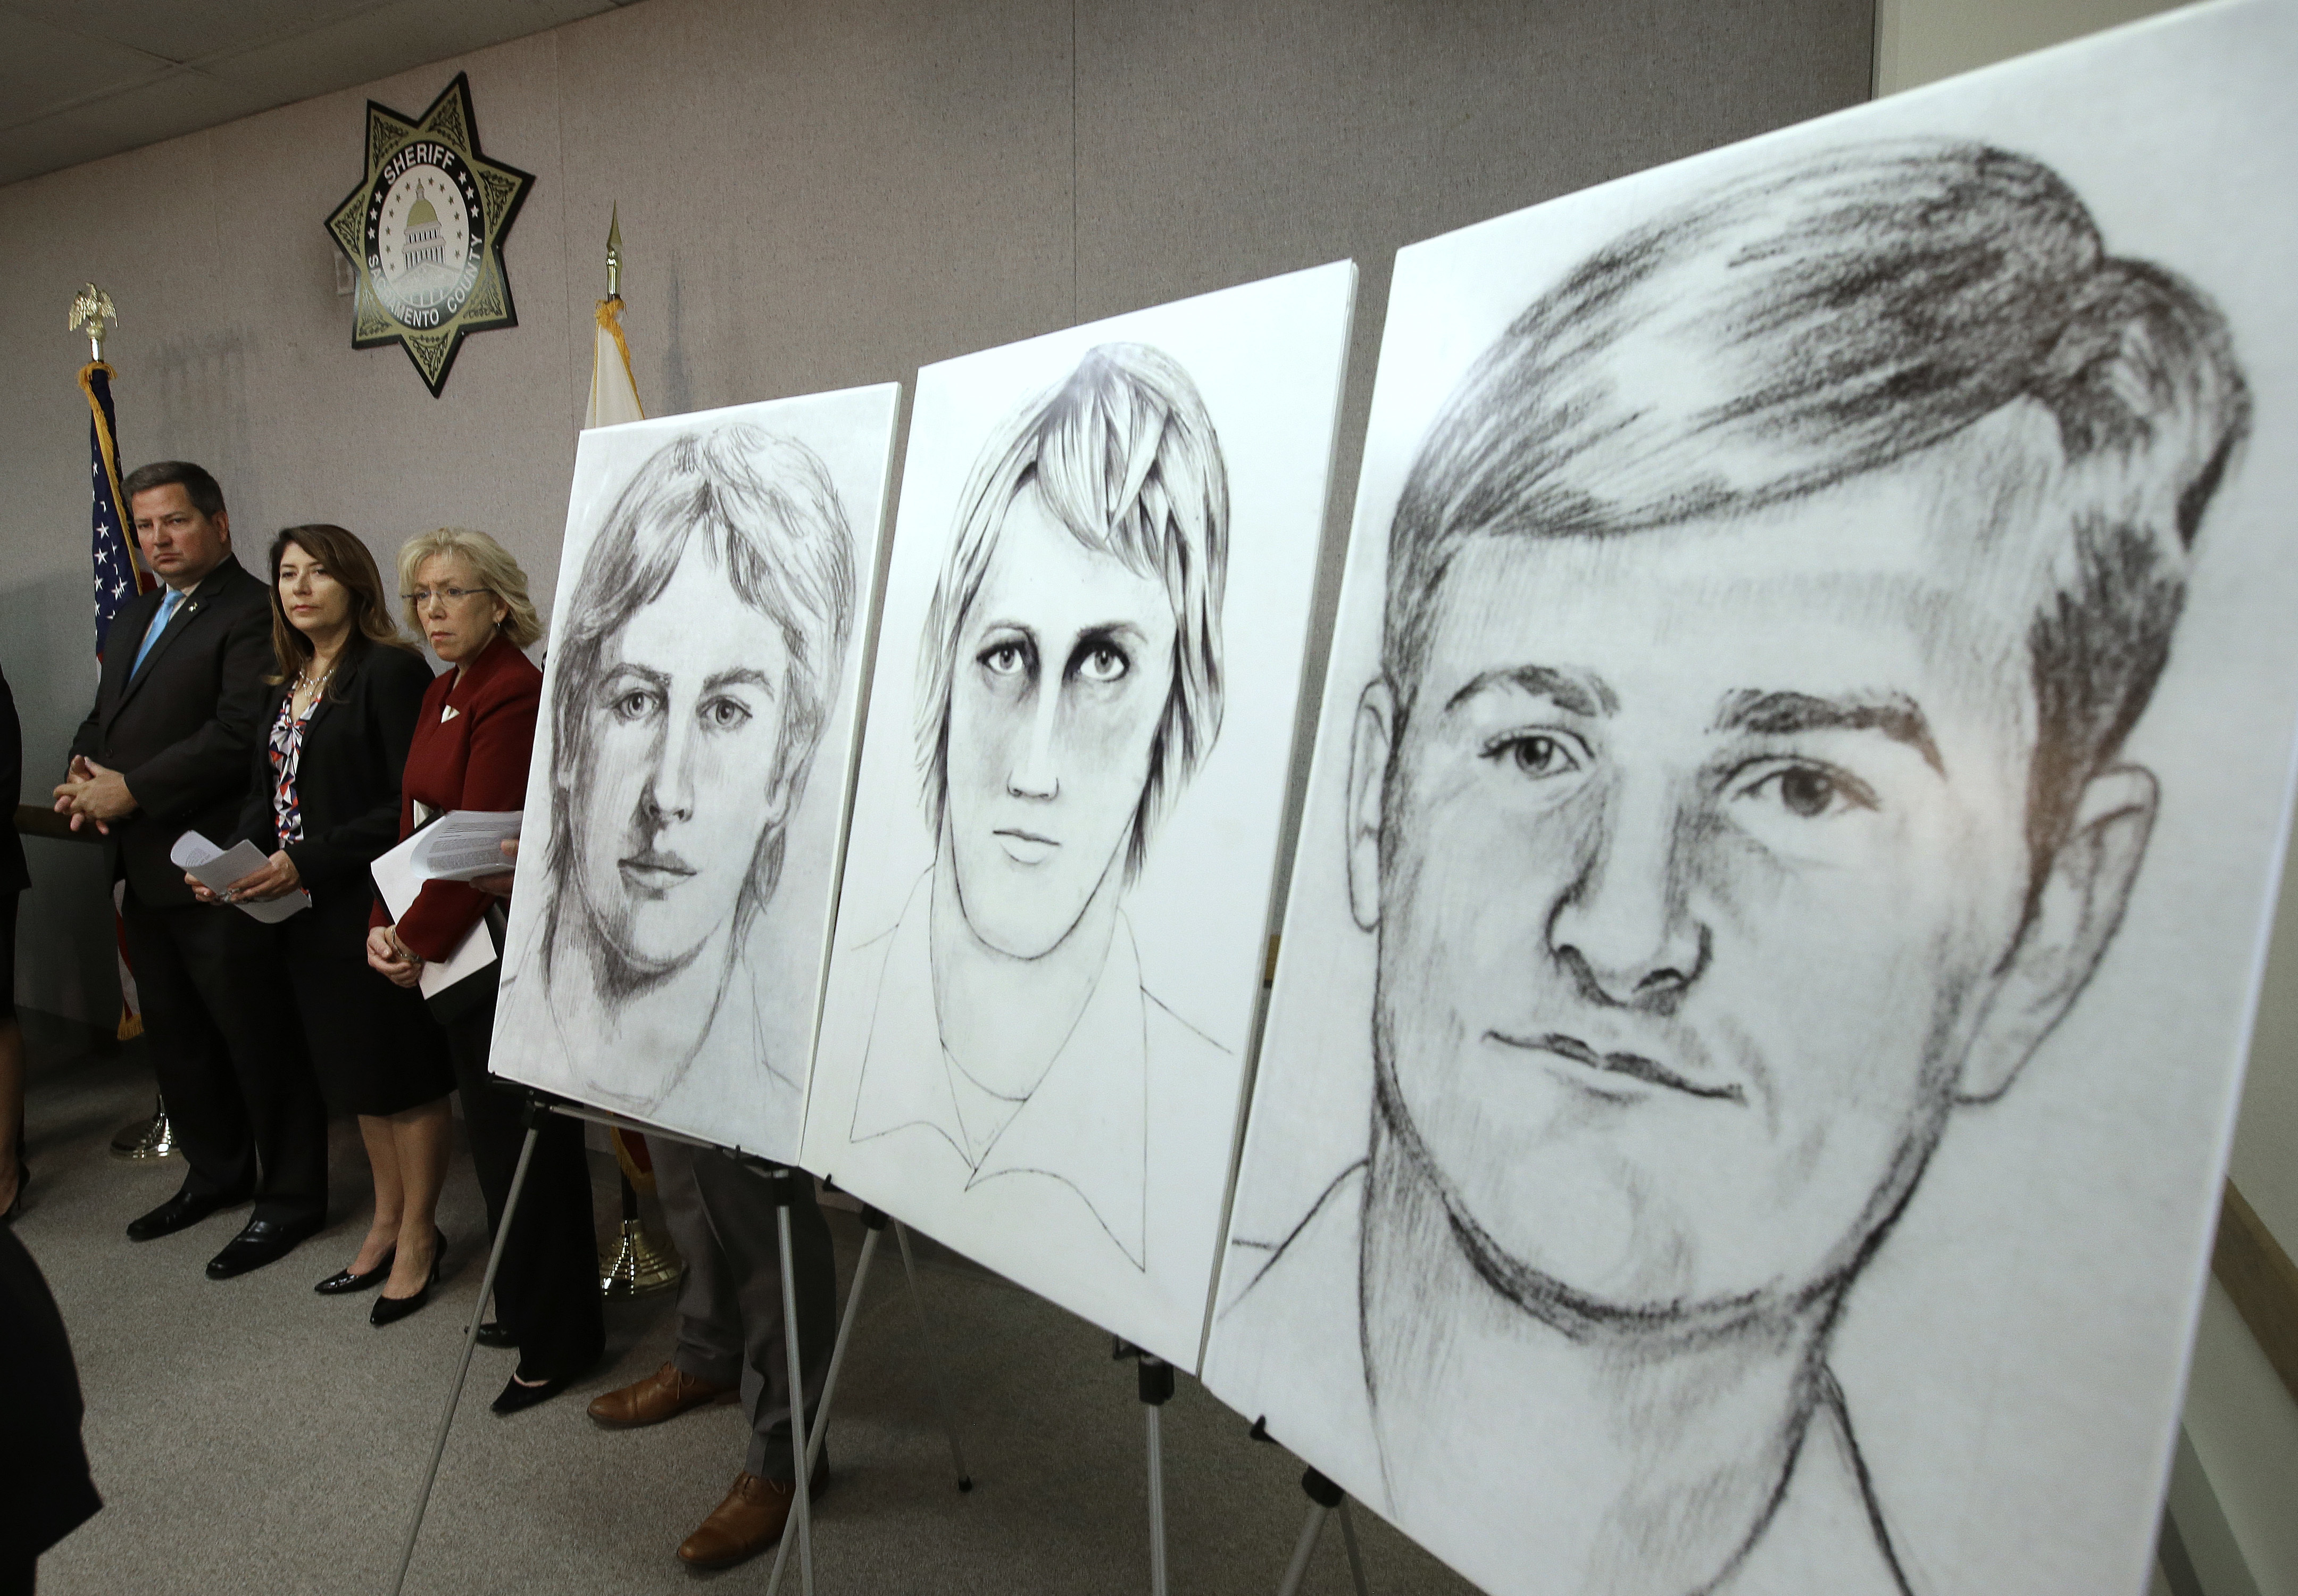 Golden State Killer: 5 Sinister and Disturbing Facts About ...